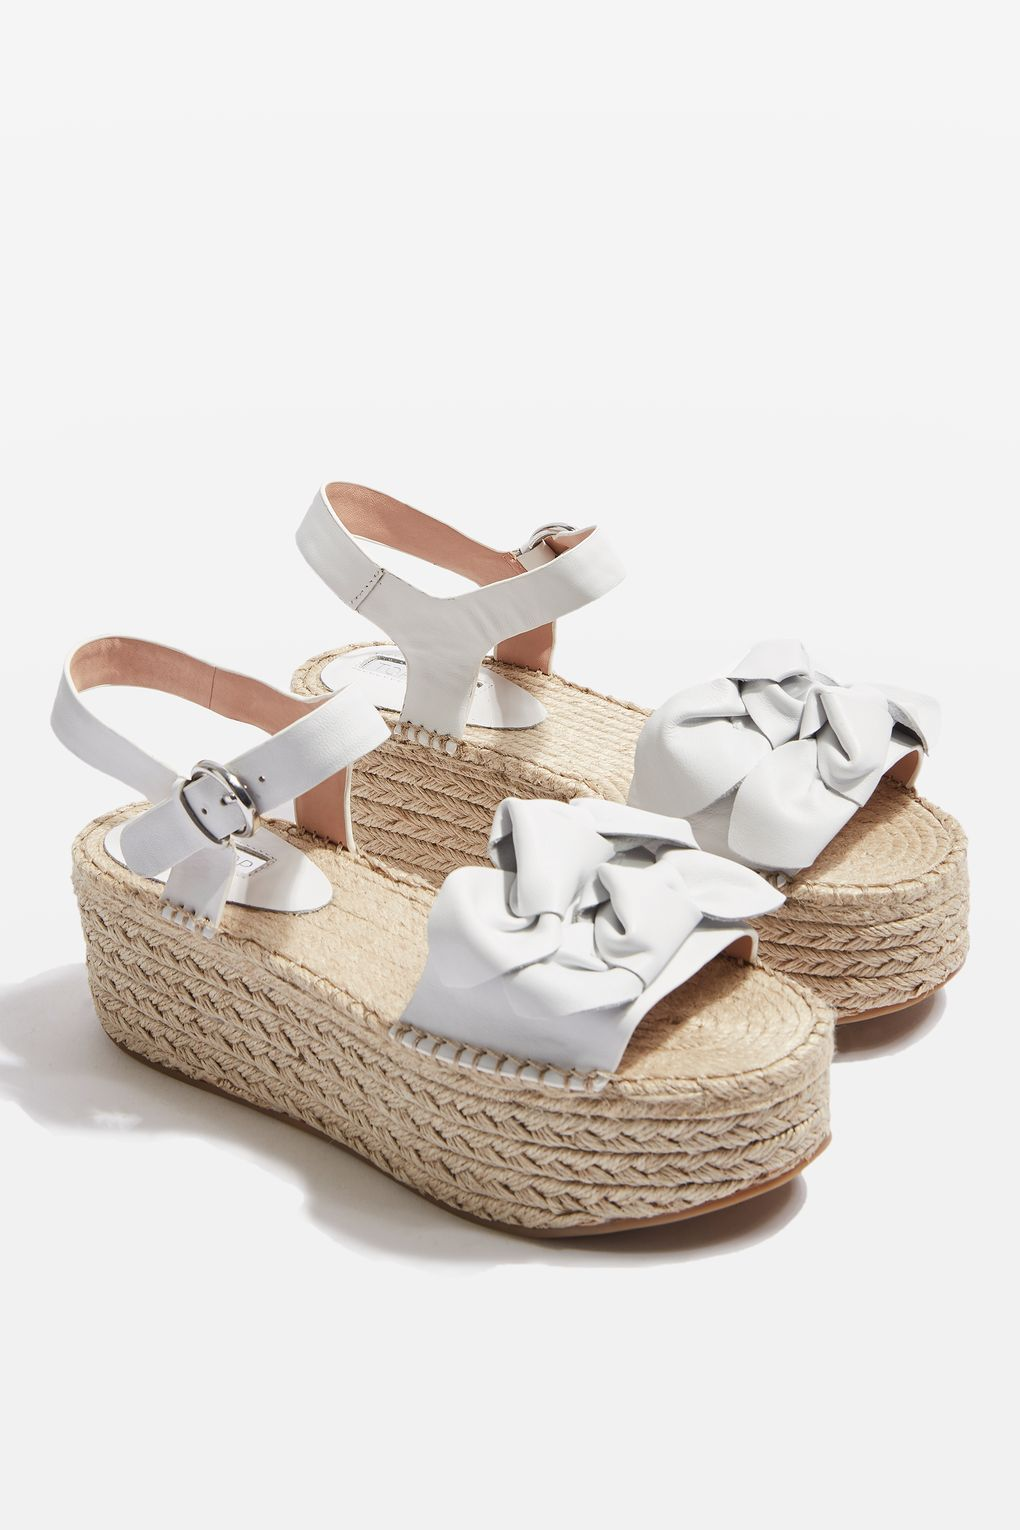 7966770ffa3 Carousel Image 1 Lace Up Sandals